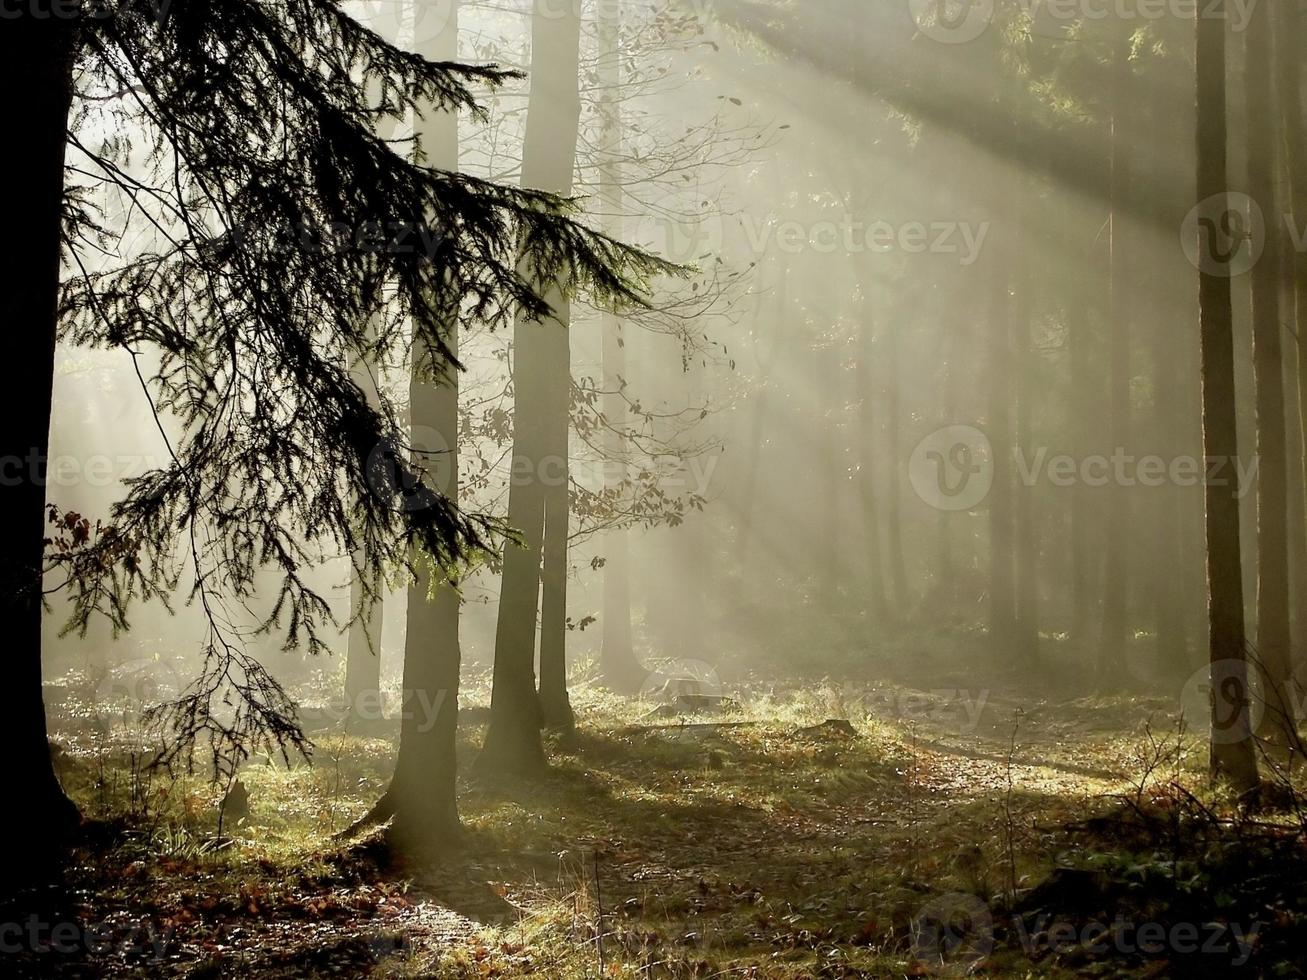 View of coniferous forest at dawn with light shining through photo